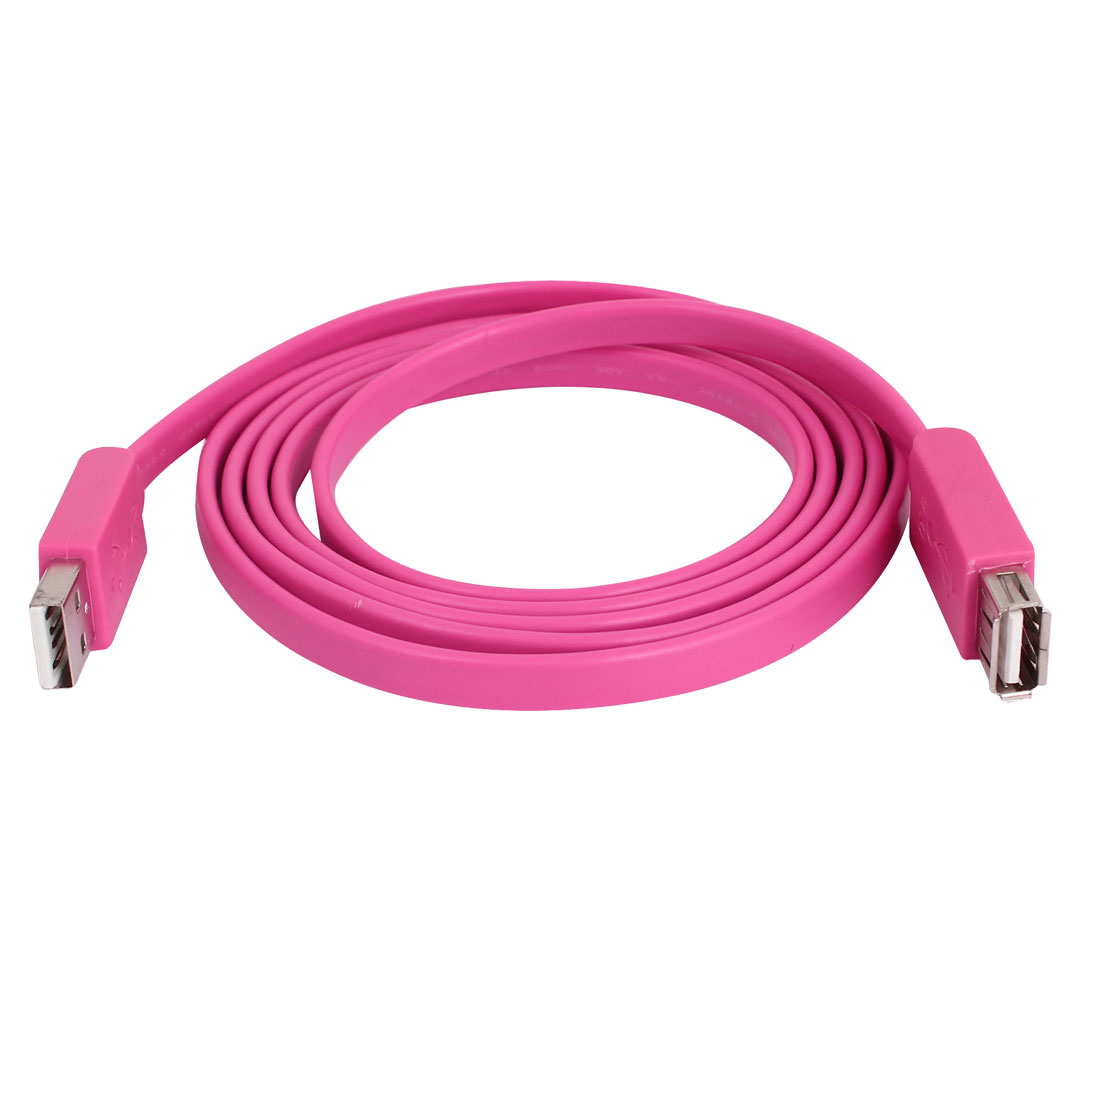 USB 2.0 Type A Female to Male Adapter Extension Cable Cord Pink 1.5M 5ft Long